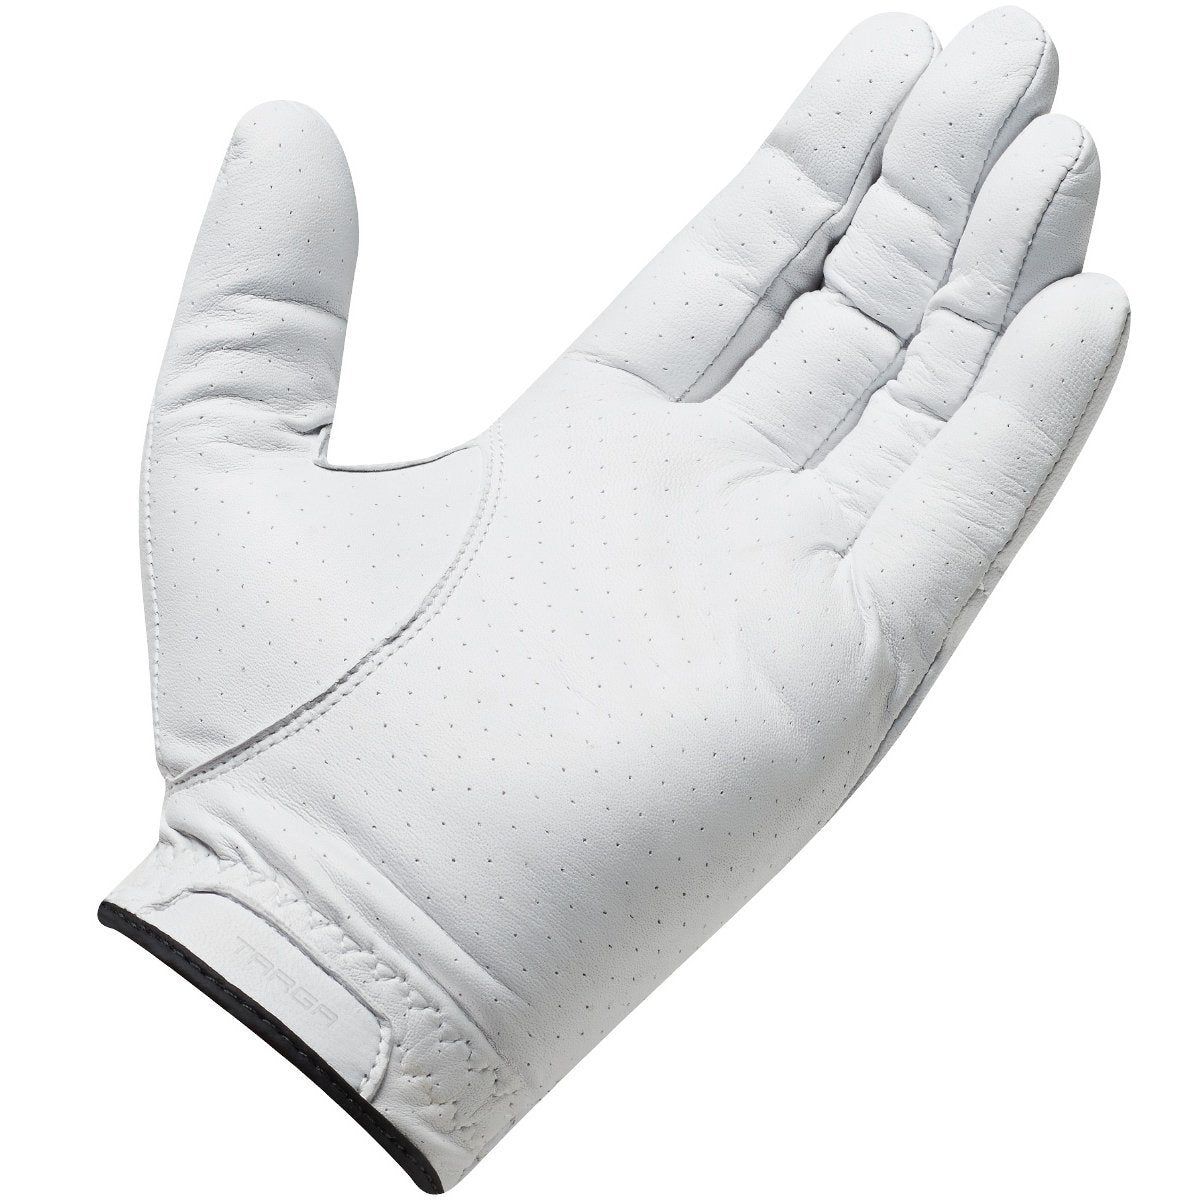 TAYLORMADE TARGA LEATHER GOLF GLOVE MRH TAYLORMADE GLOVES TAYLORMADE